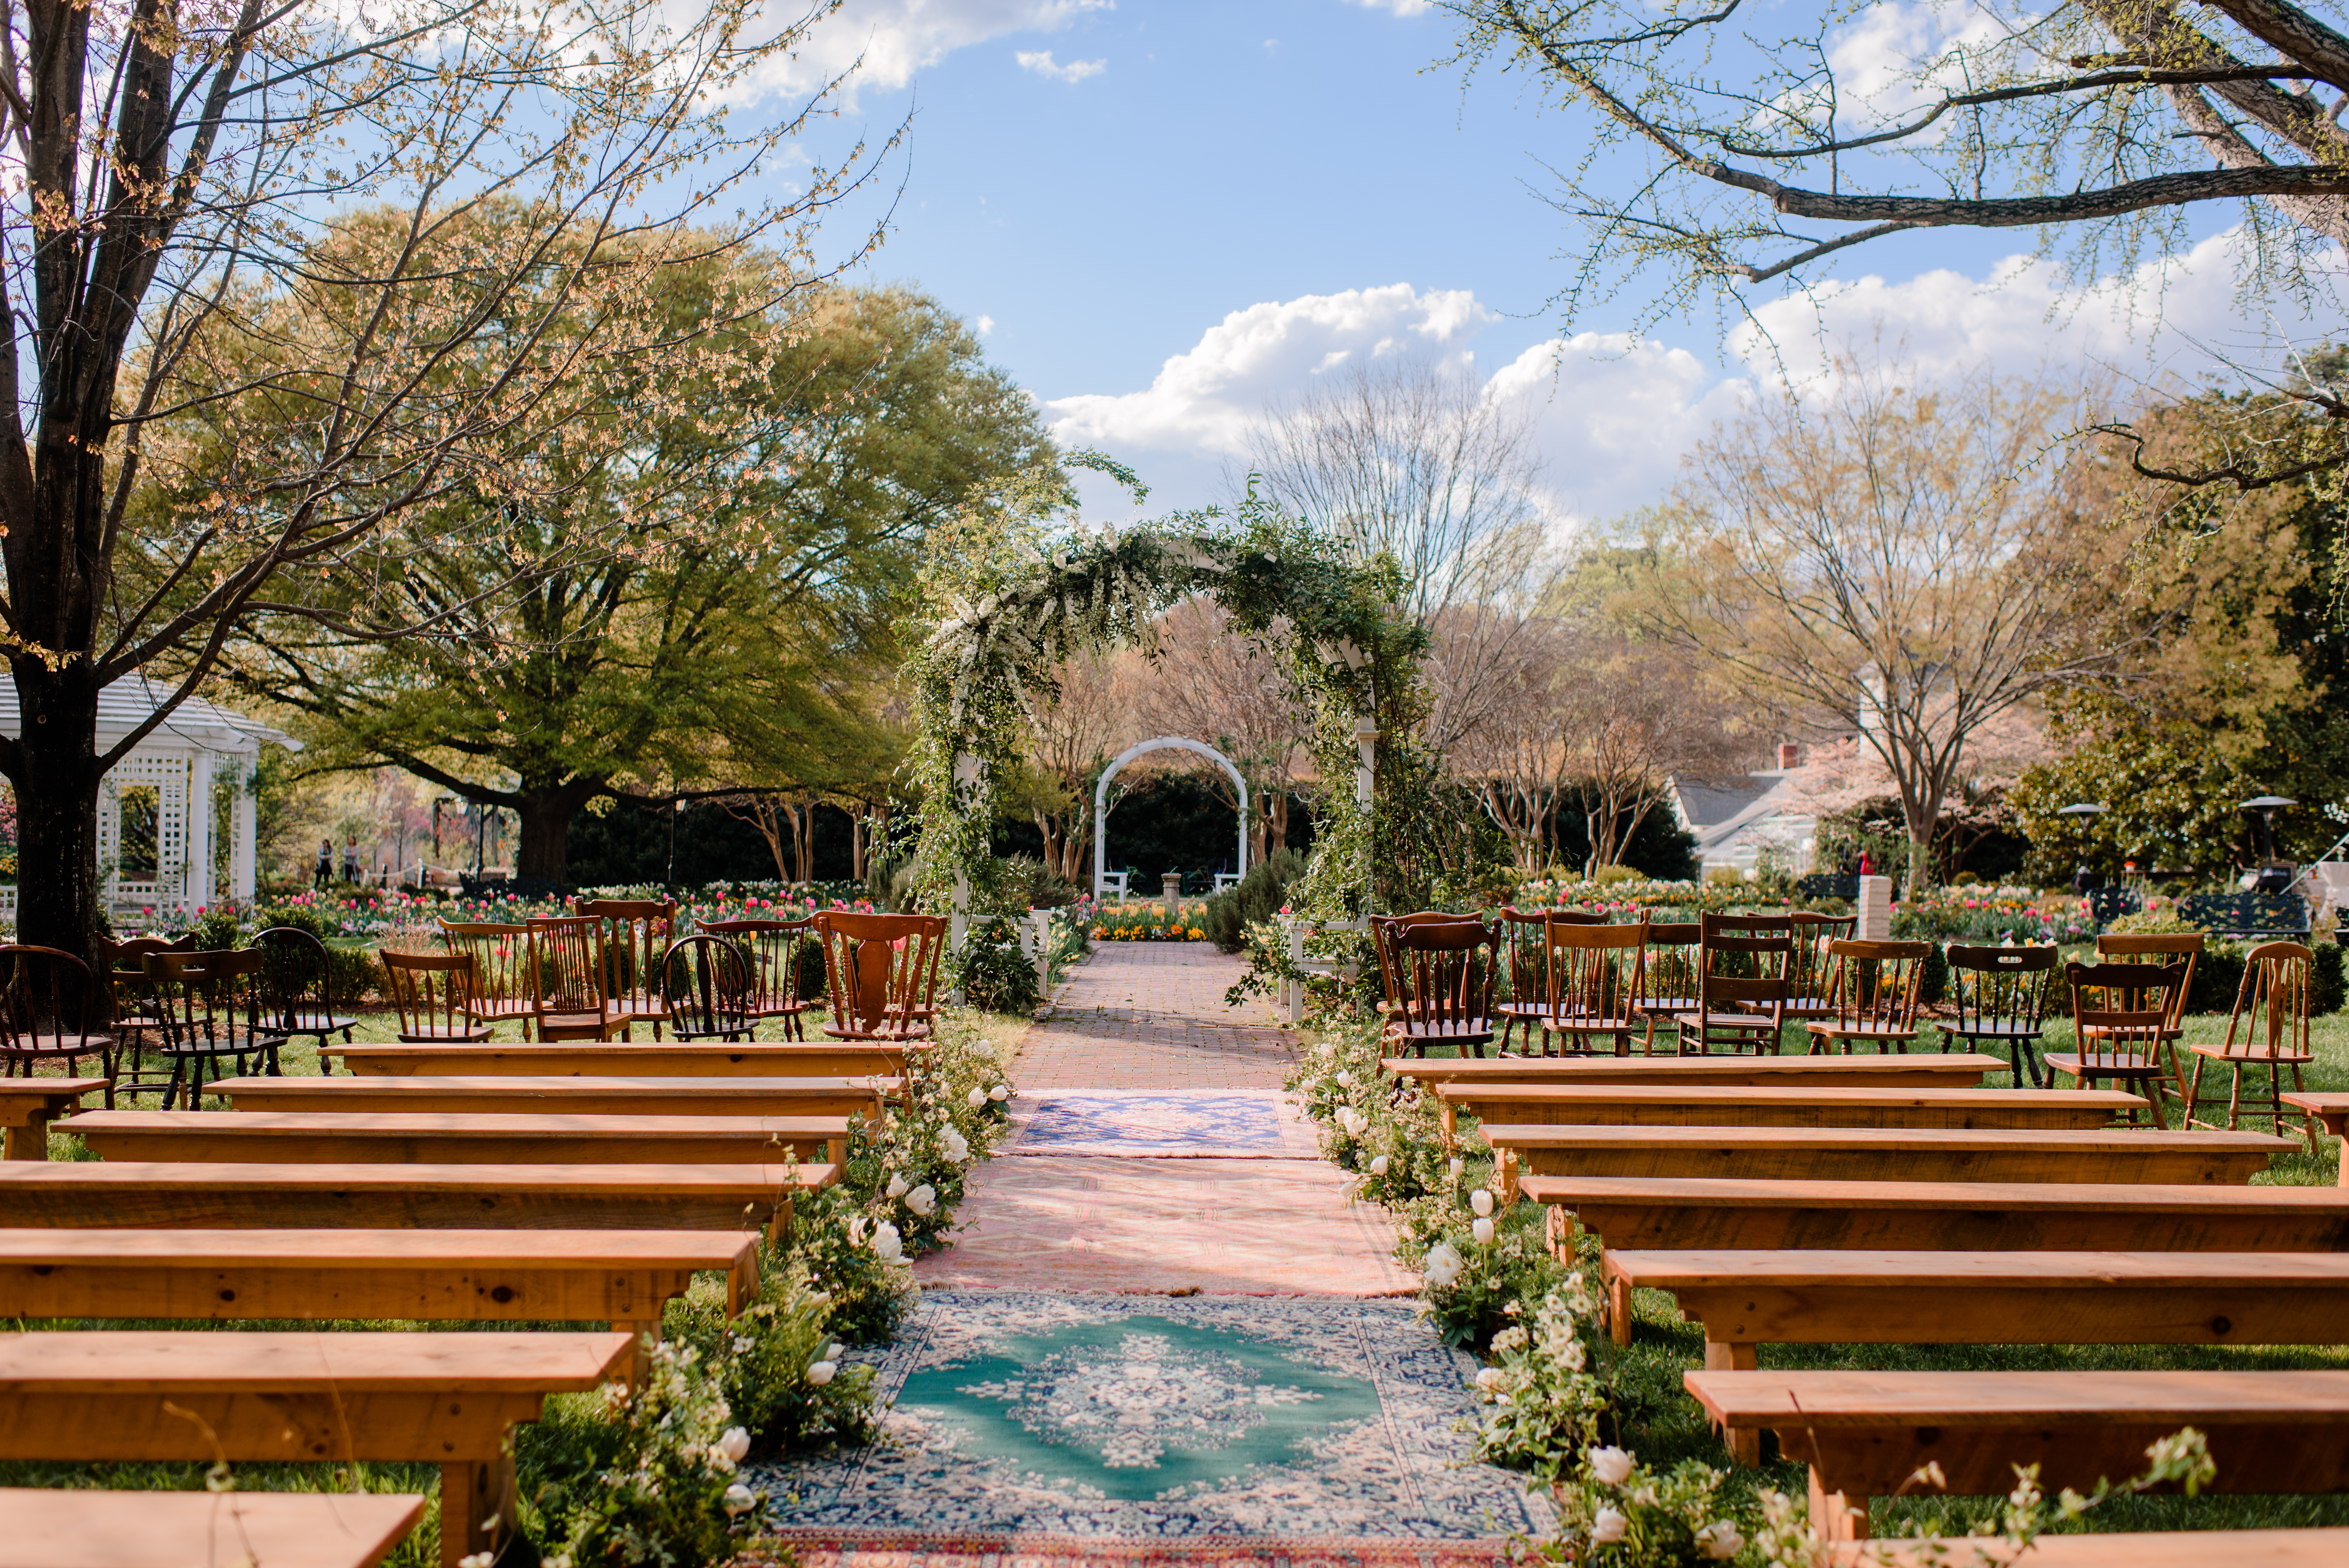 Simply beautiful outdoor wedding ceremony design featuring specialty rentals from Paisley and Jade that include white pine benches, mis-matched vintage wooden chairs and assorted patterned rugs.